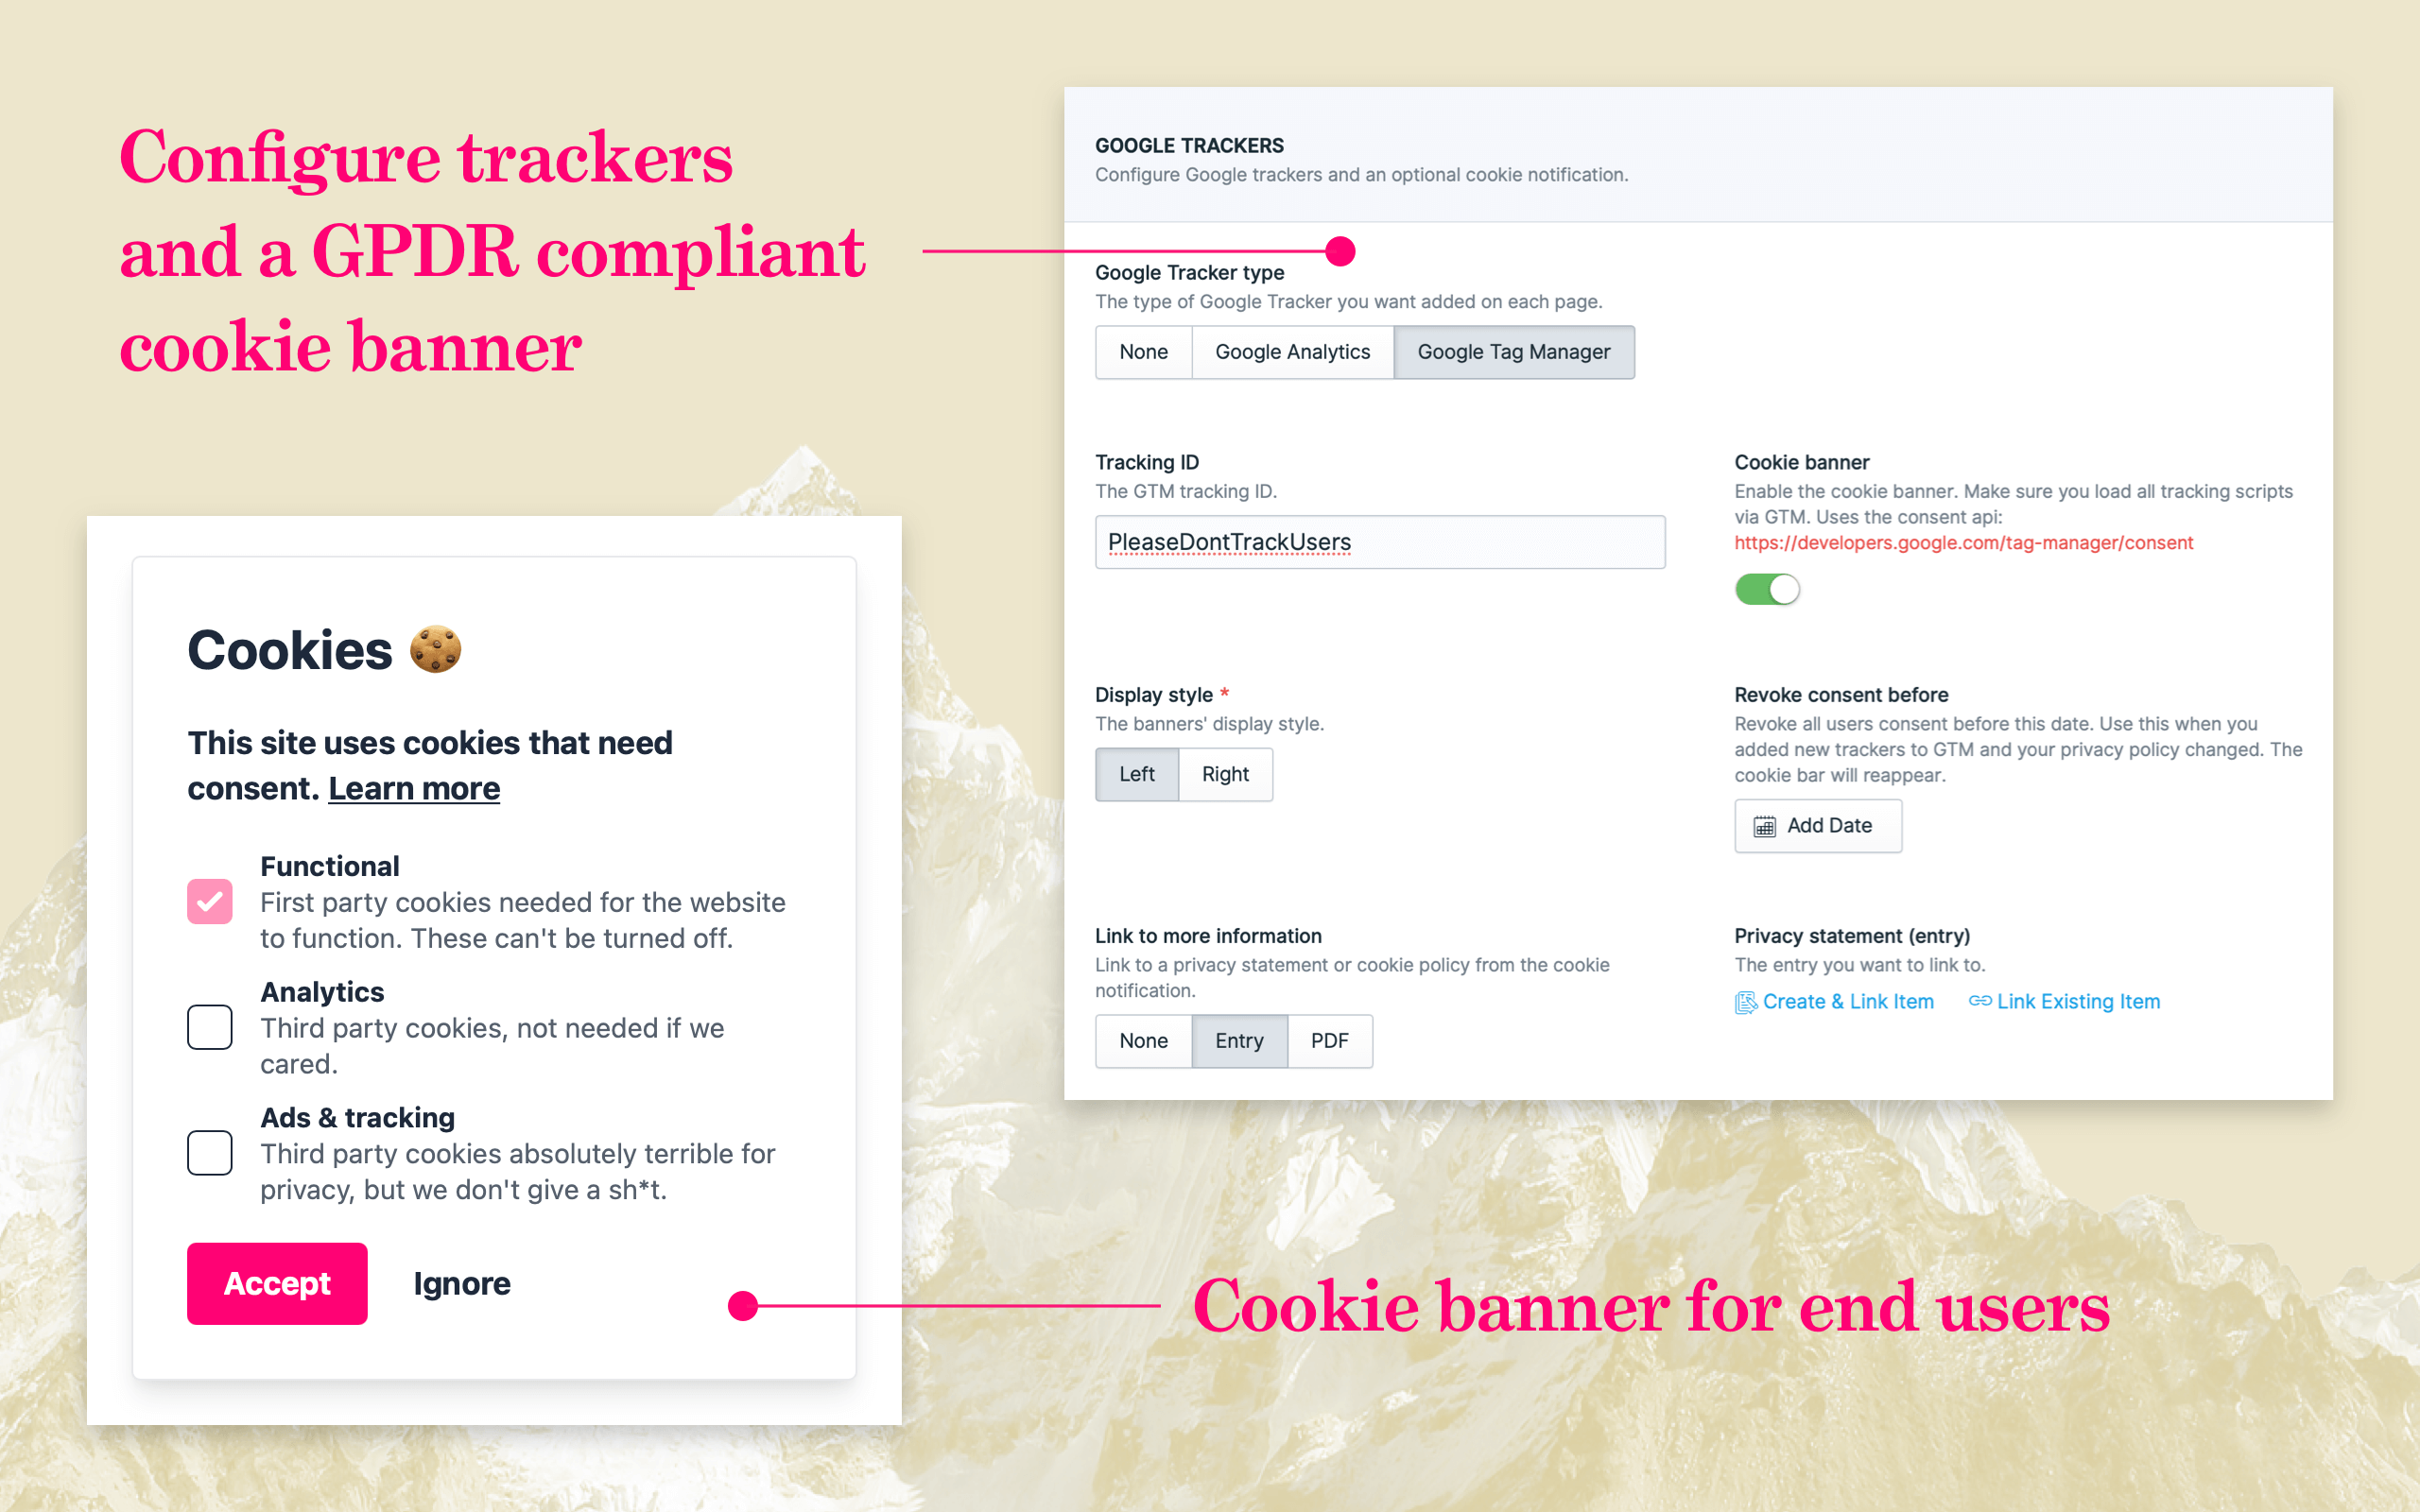 Configure trackers, add a GPDR compliant cookie banner.